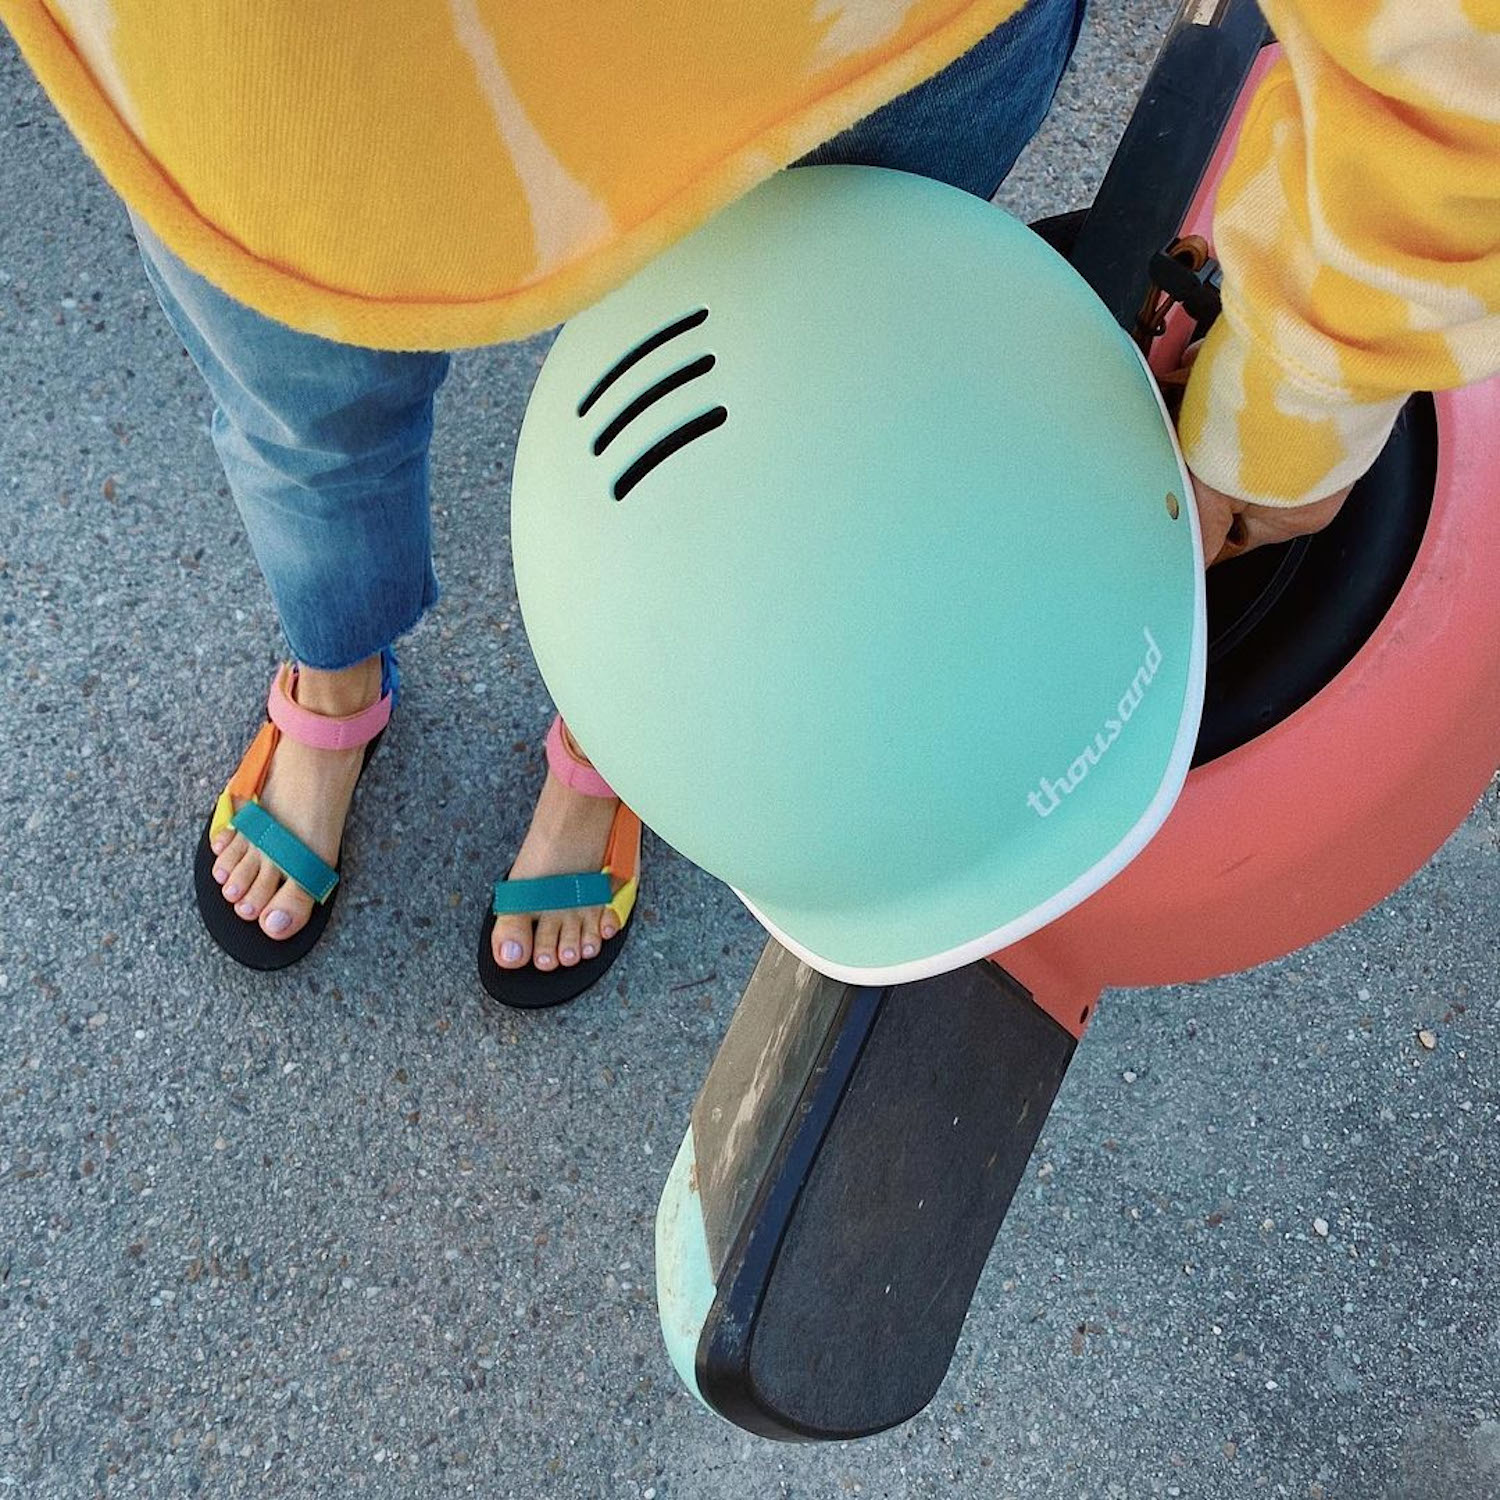 electric skateboard and Thousand helmet